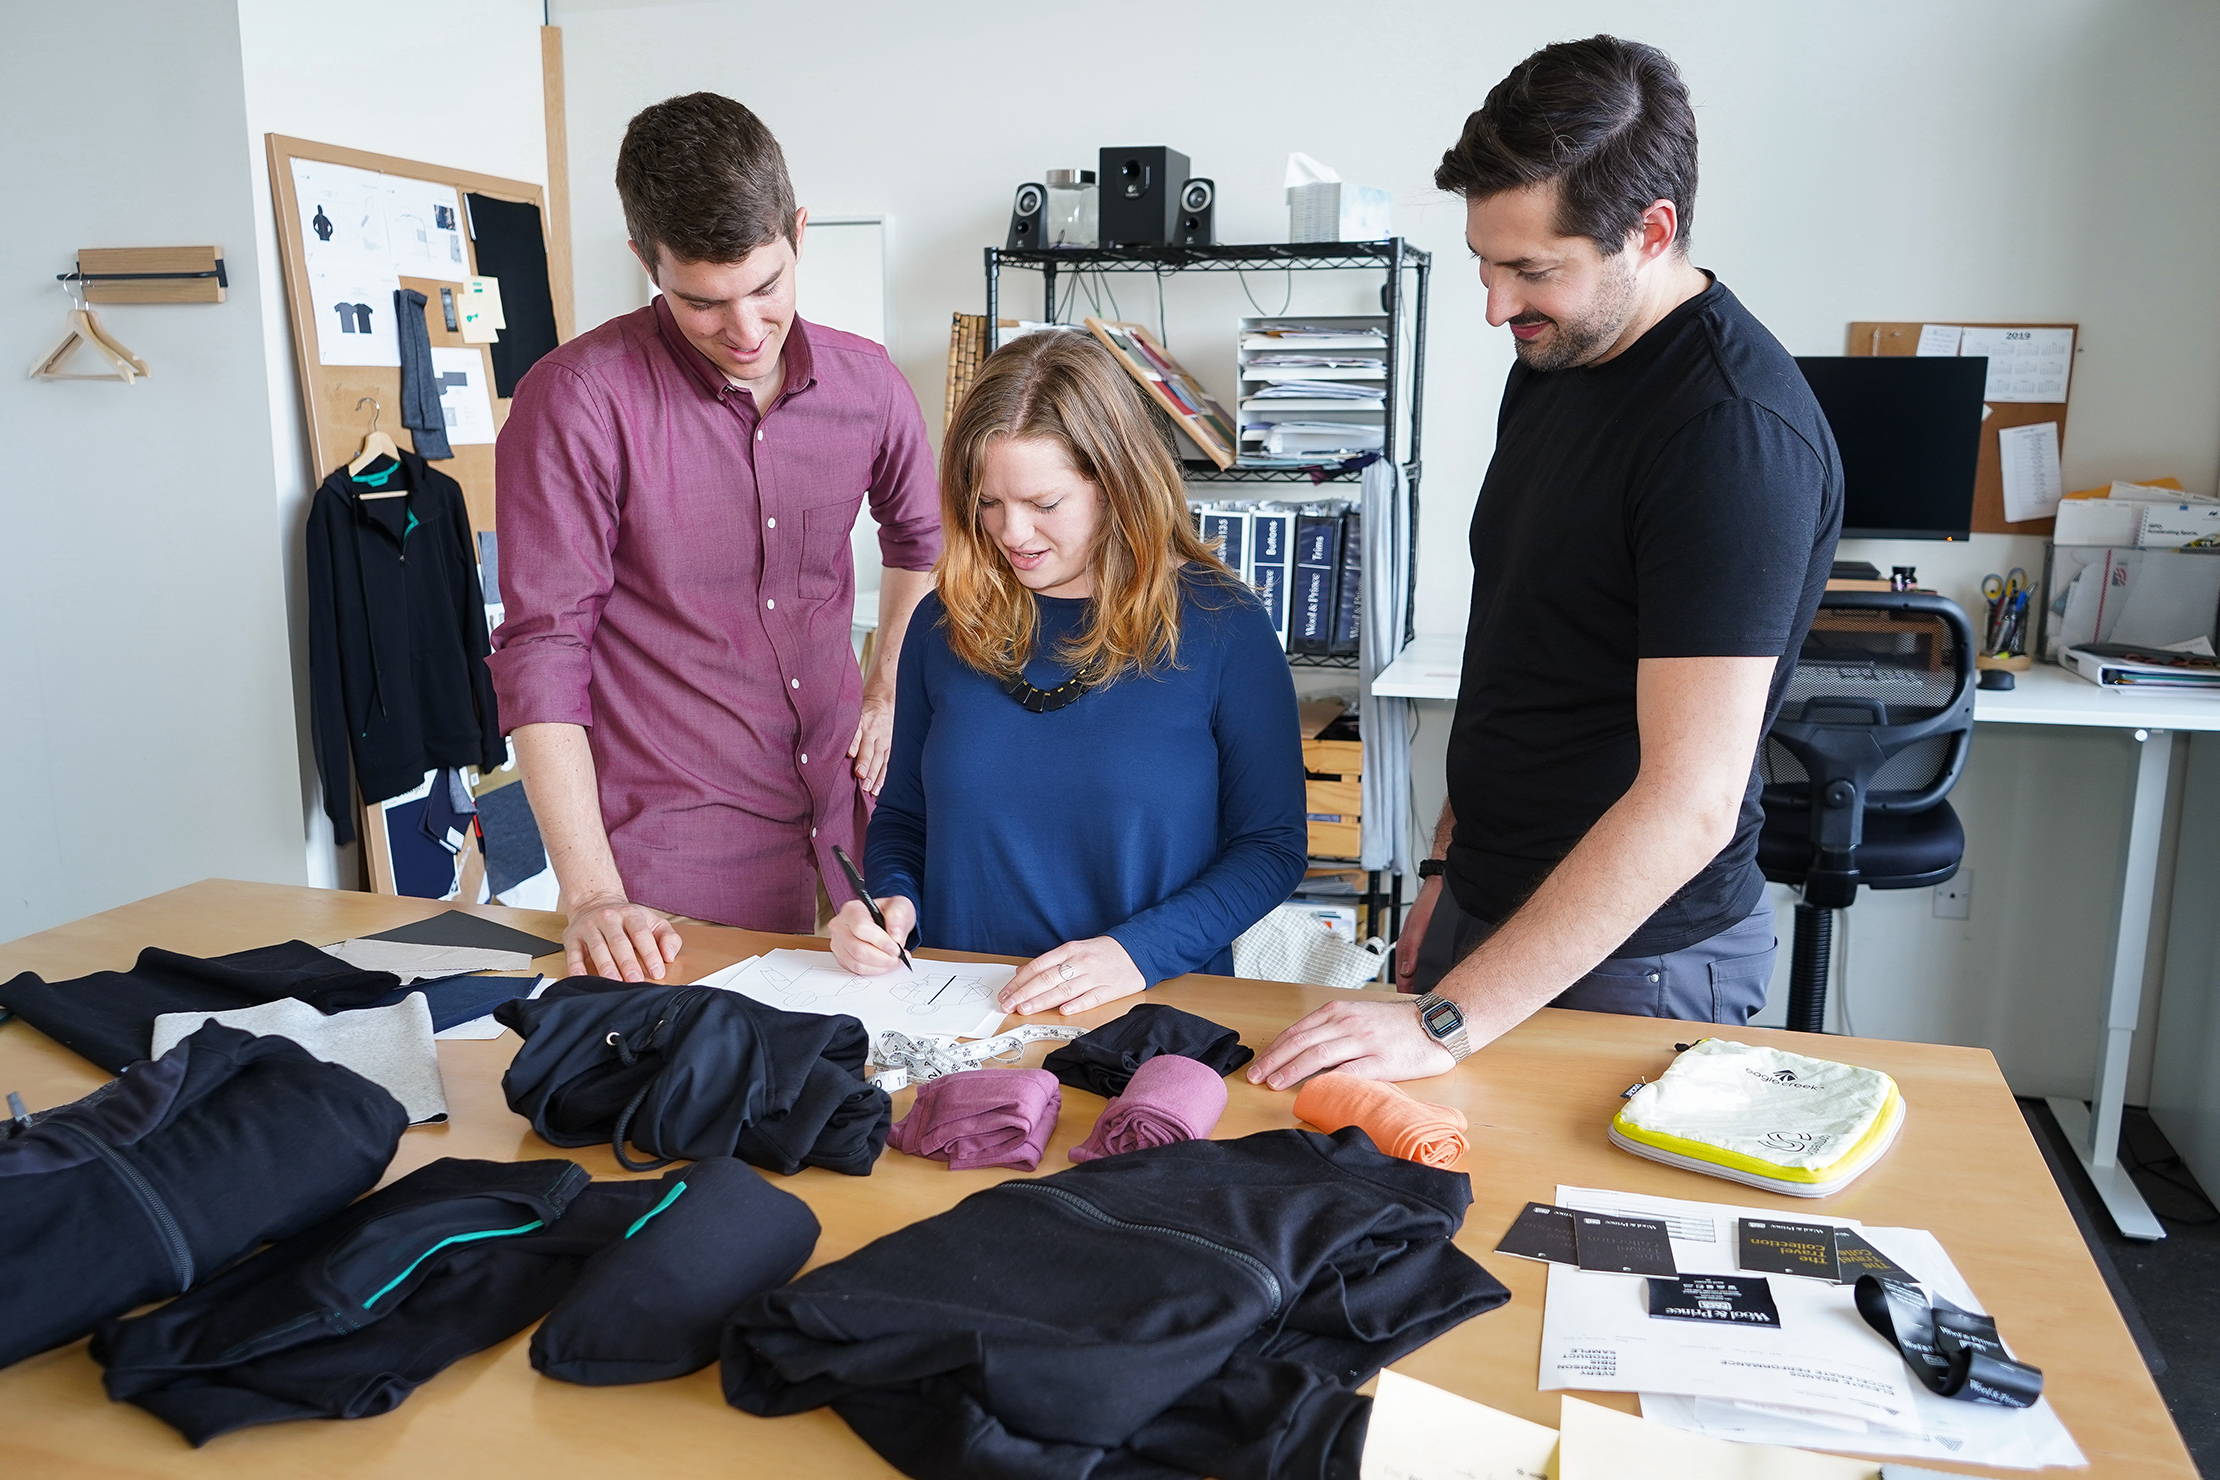 Collaborating at the Wool & Prince HQ in Portland